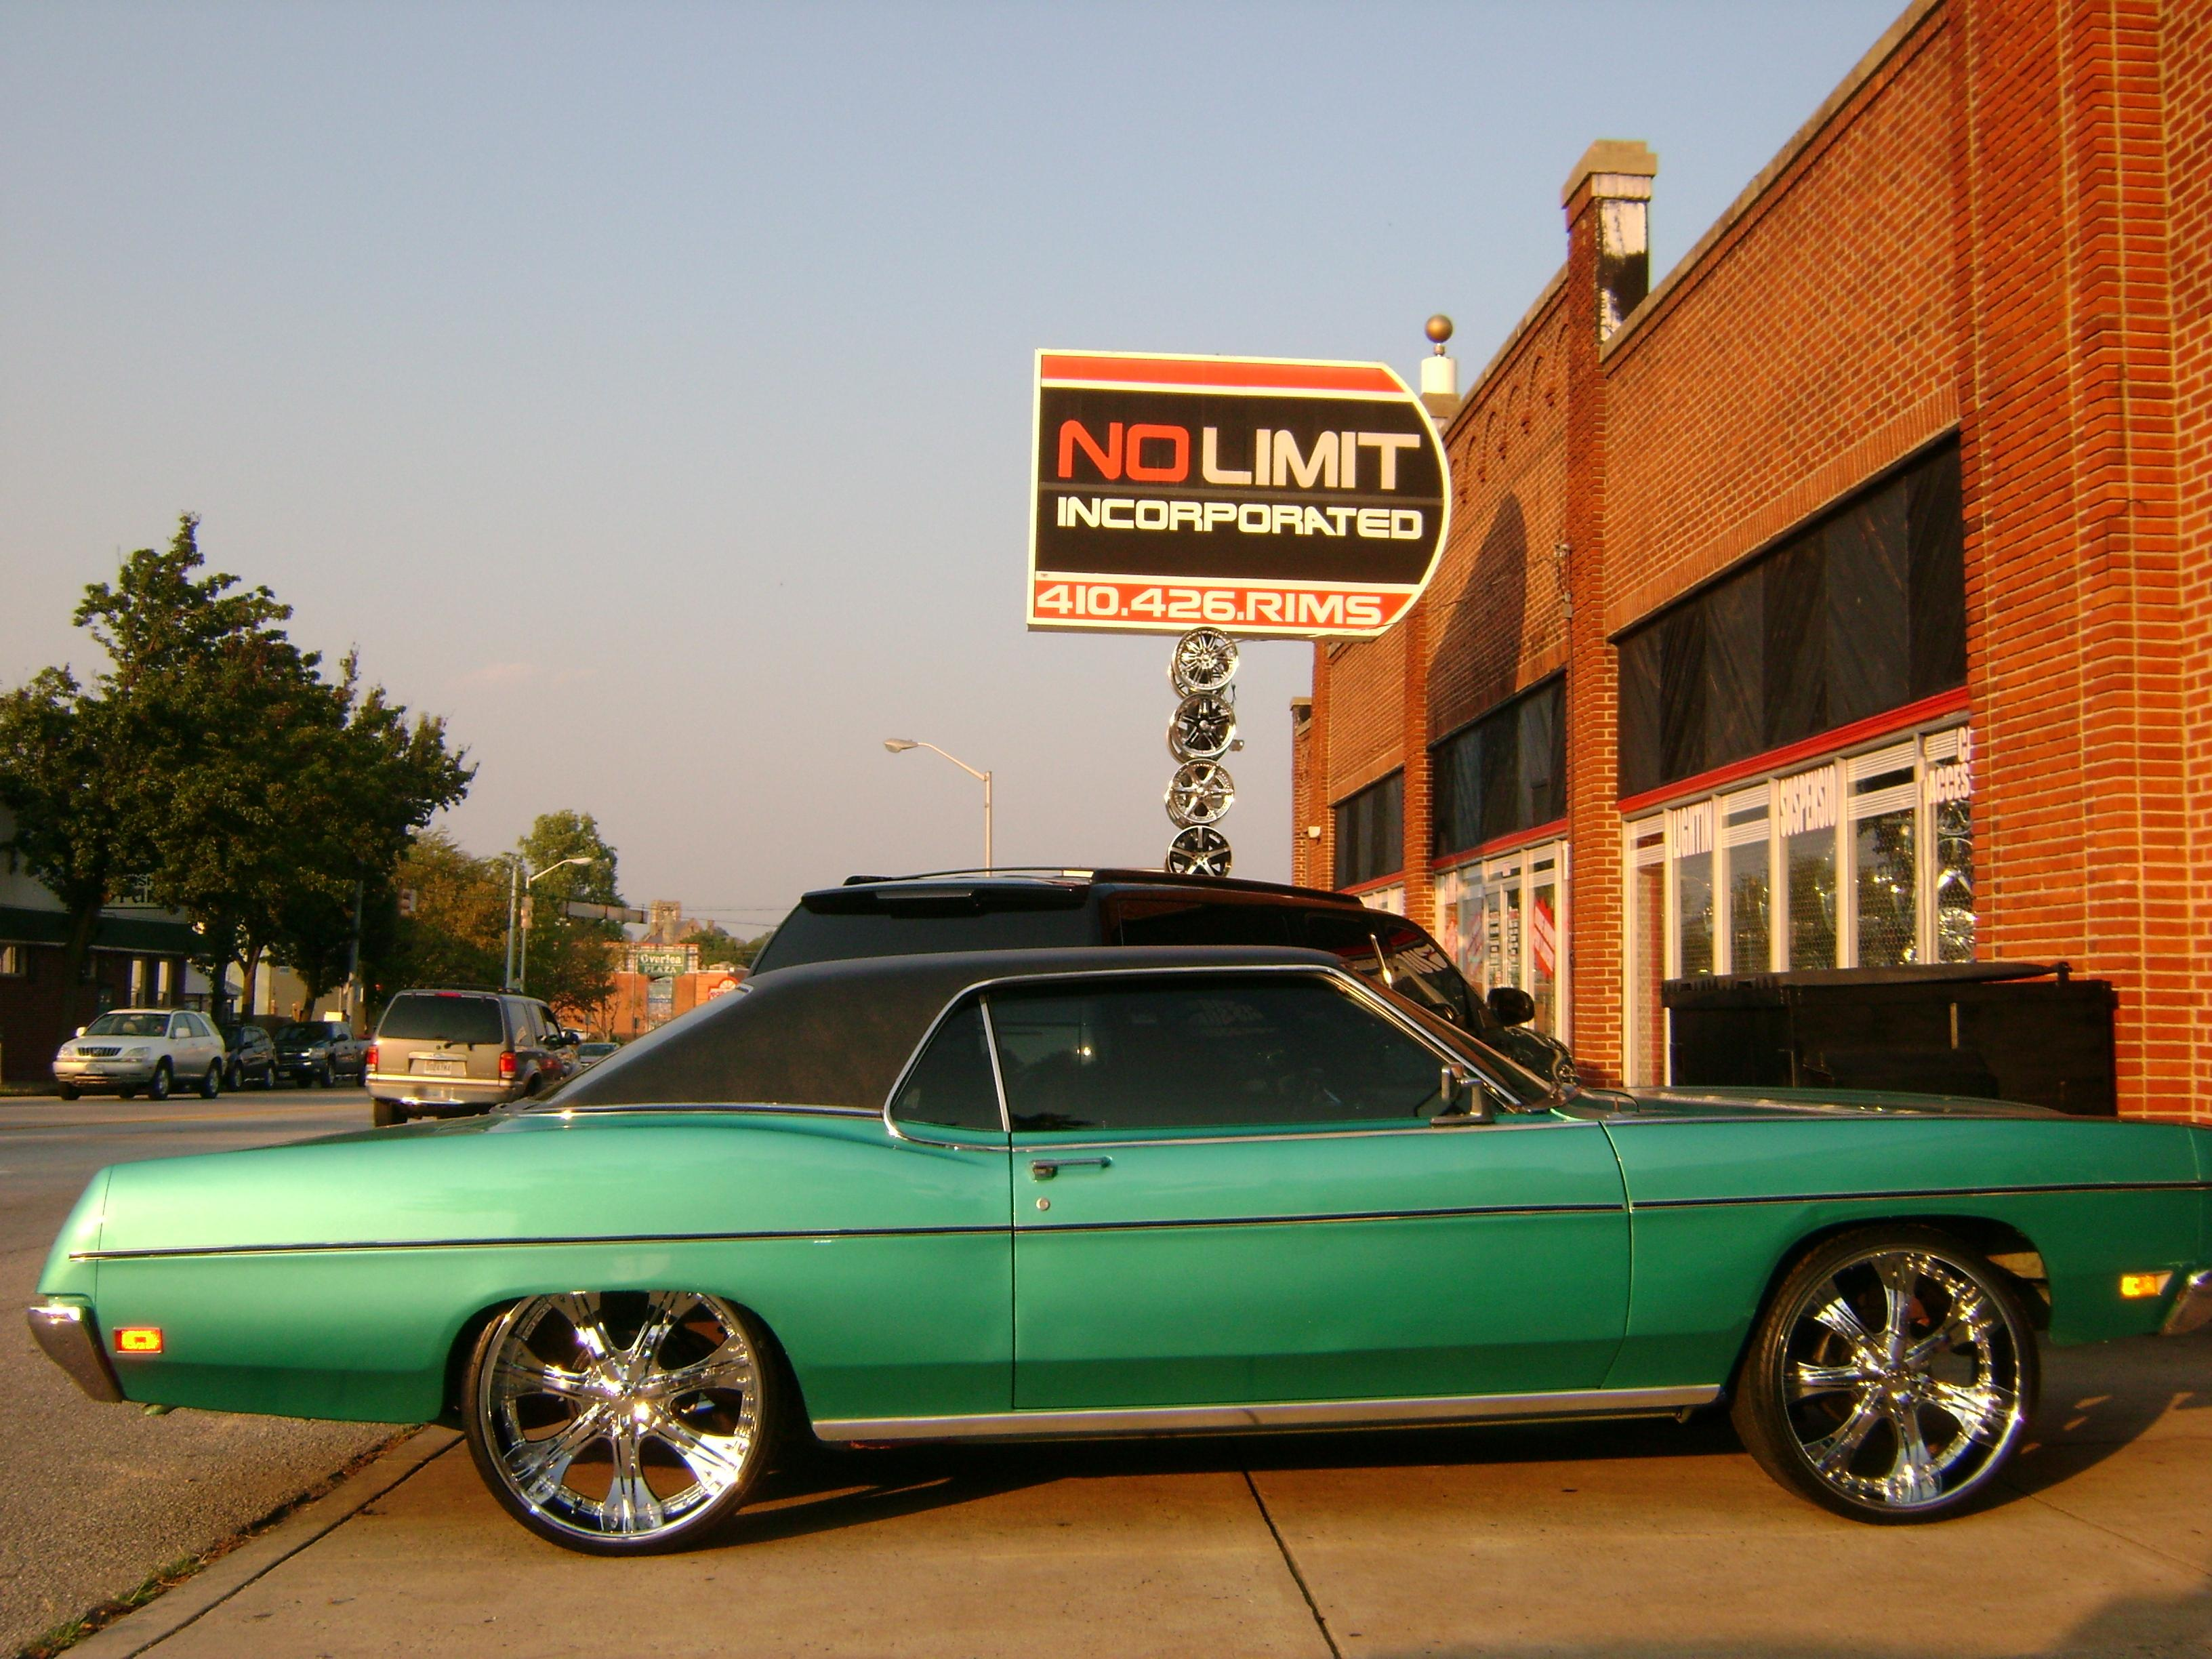 NOLIMITINC's 1972 Ford LTD